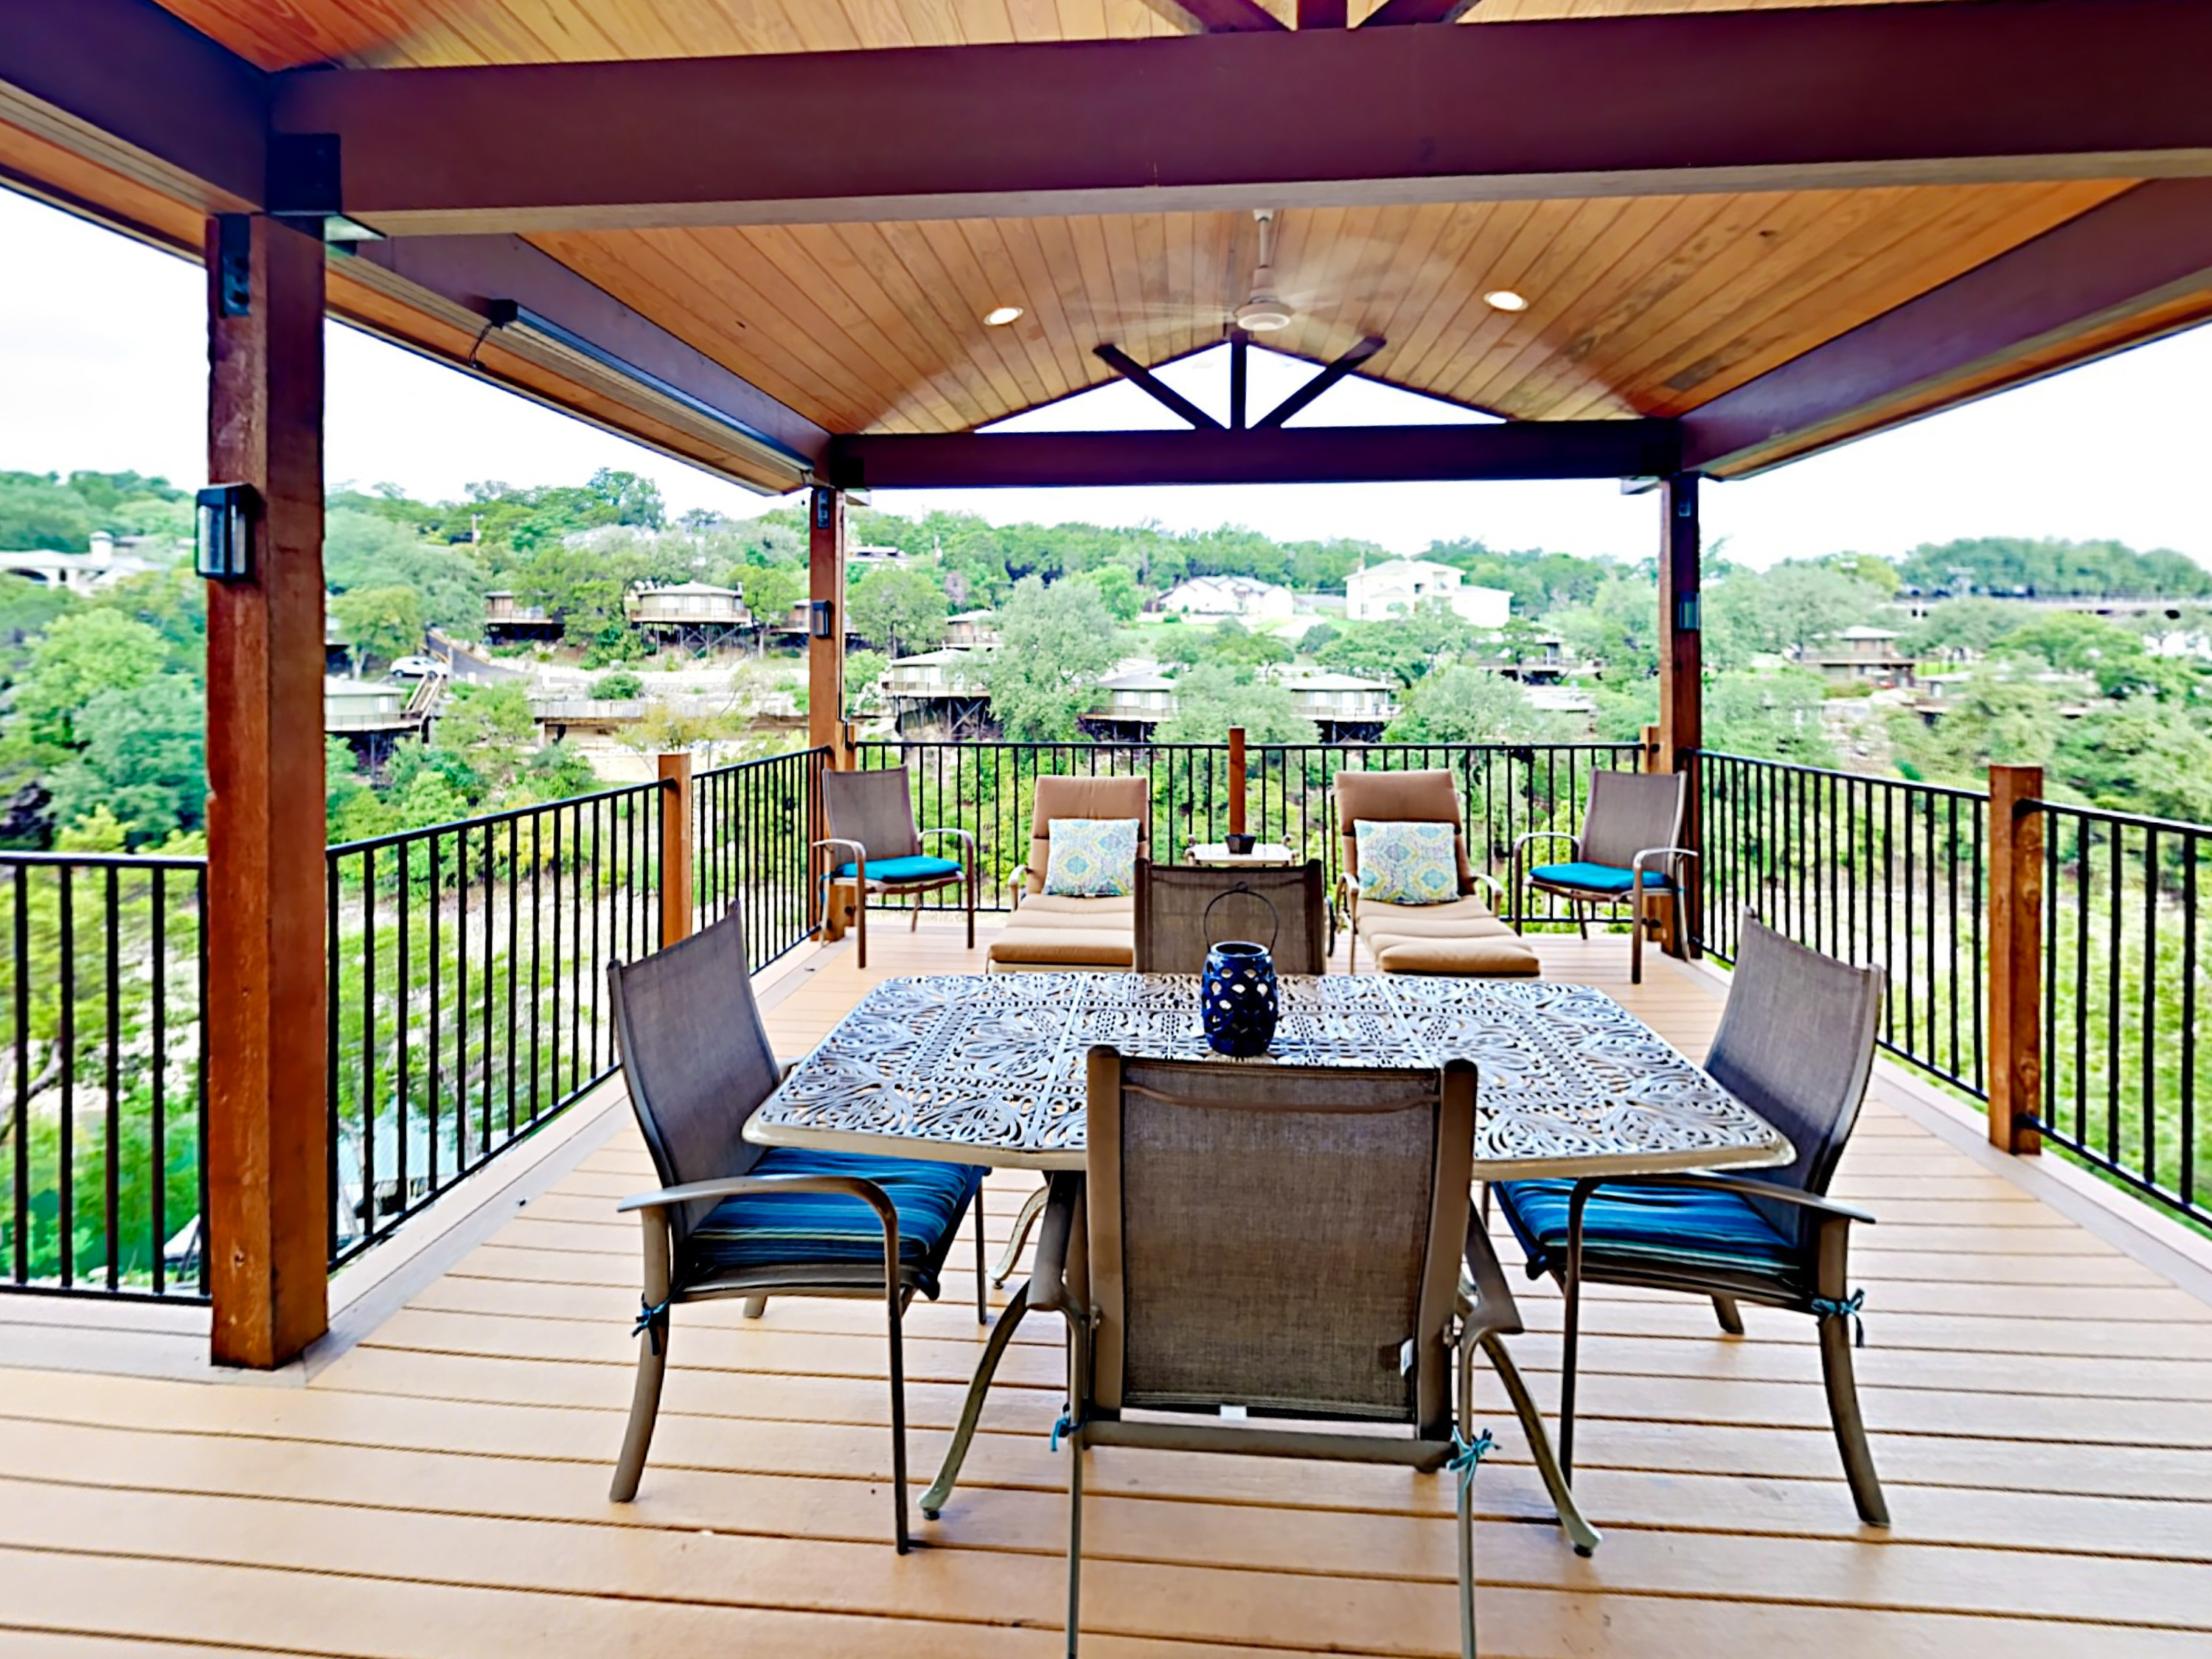 Lakeway TX Vacation Rental The brand new